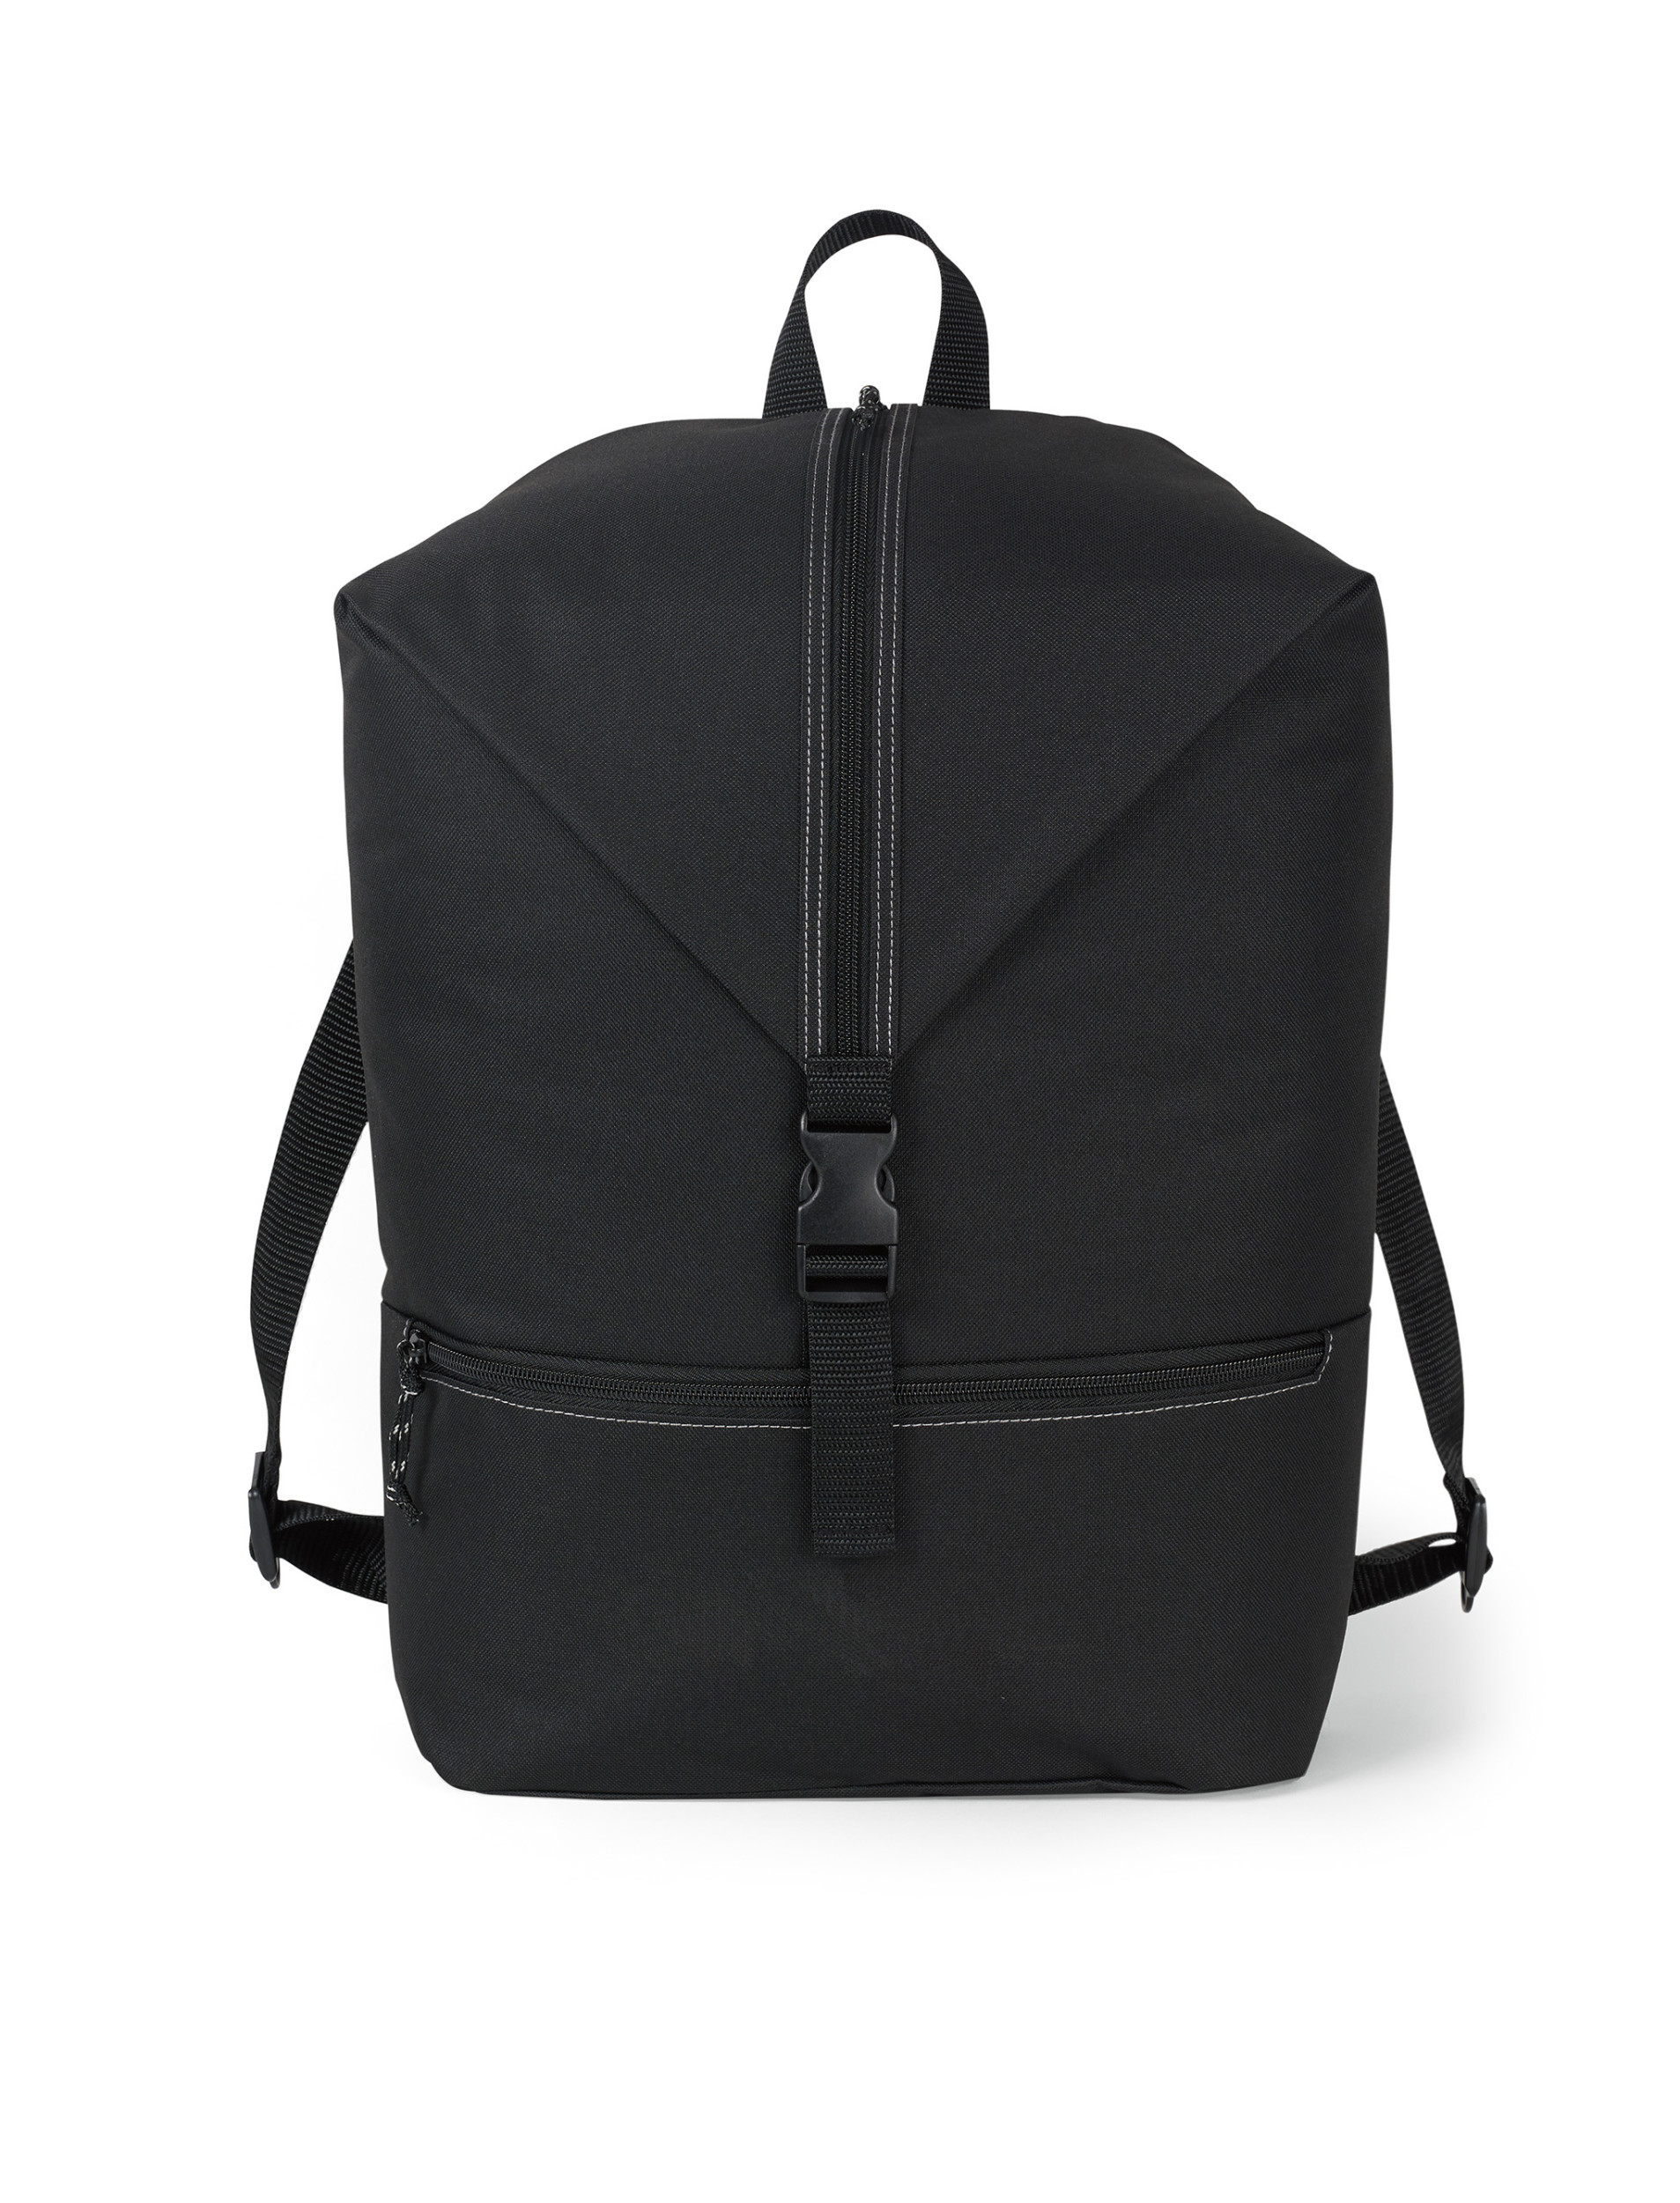 Gemline 100068 - Rutledge Backpack